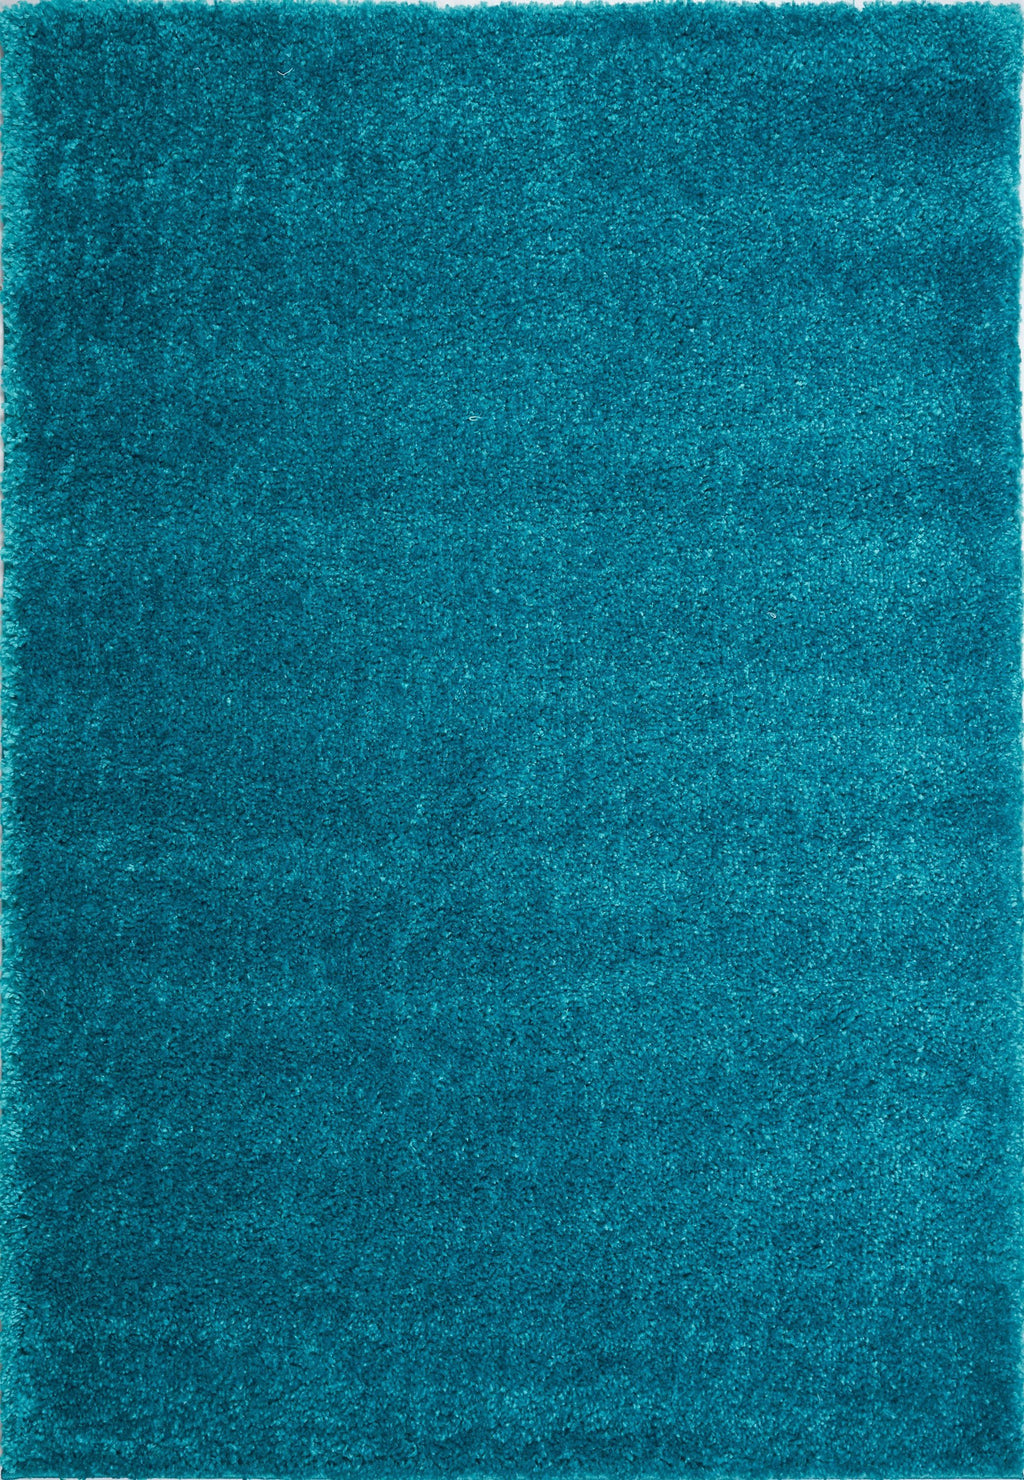 Candy Shaggy Turquoise Soft Plush Area Rug -